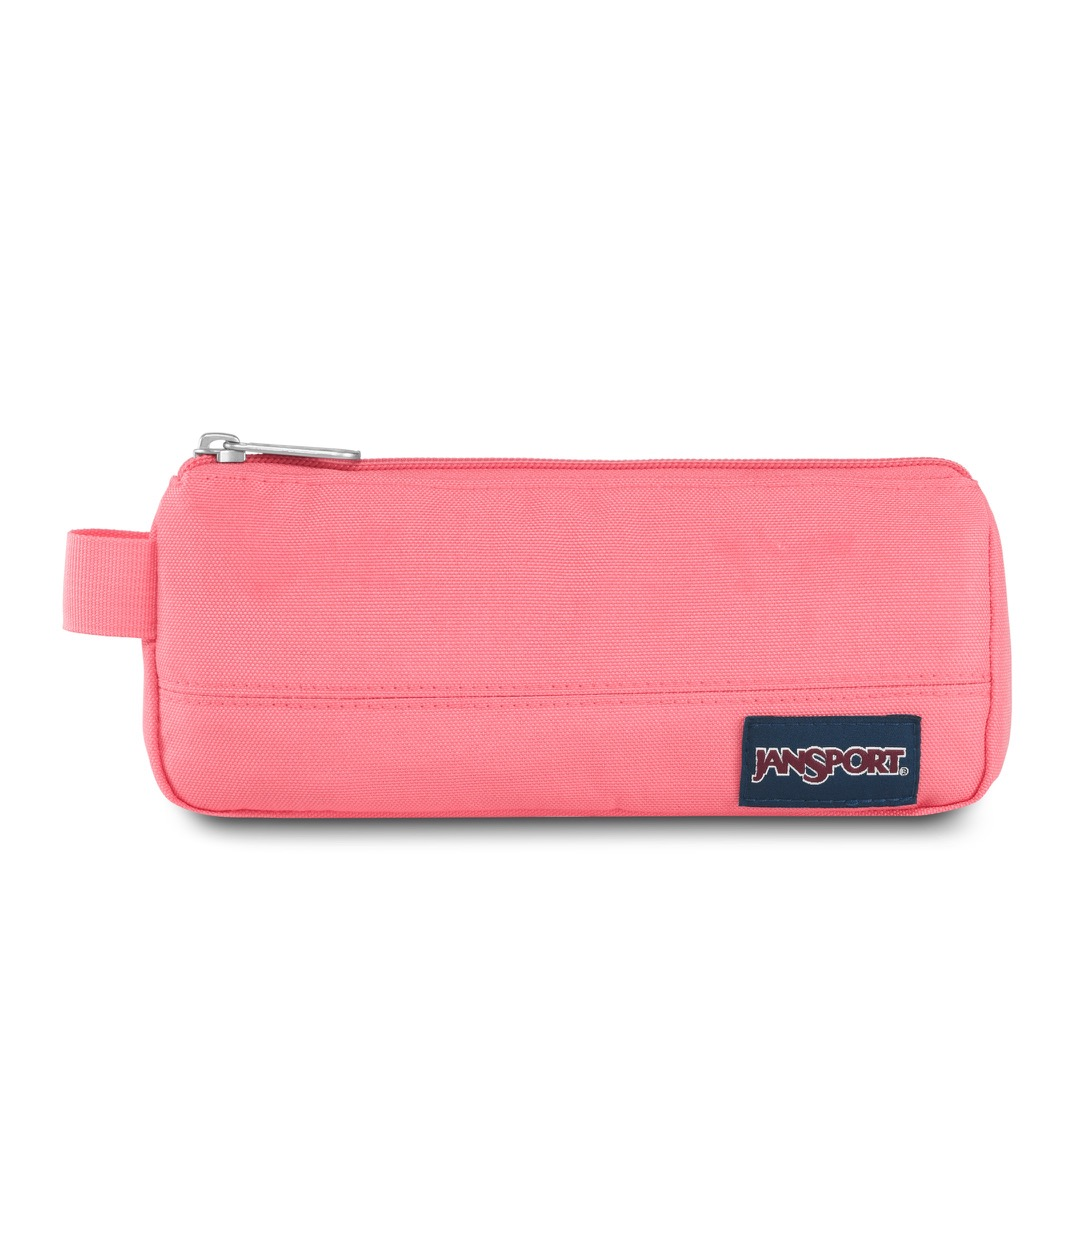 BASIC ACCESSORY POUCH - STRAWBERRY PINK